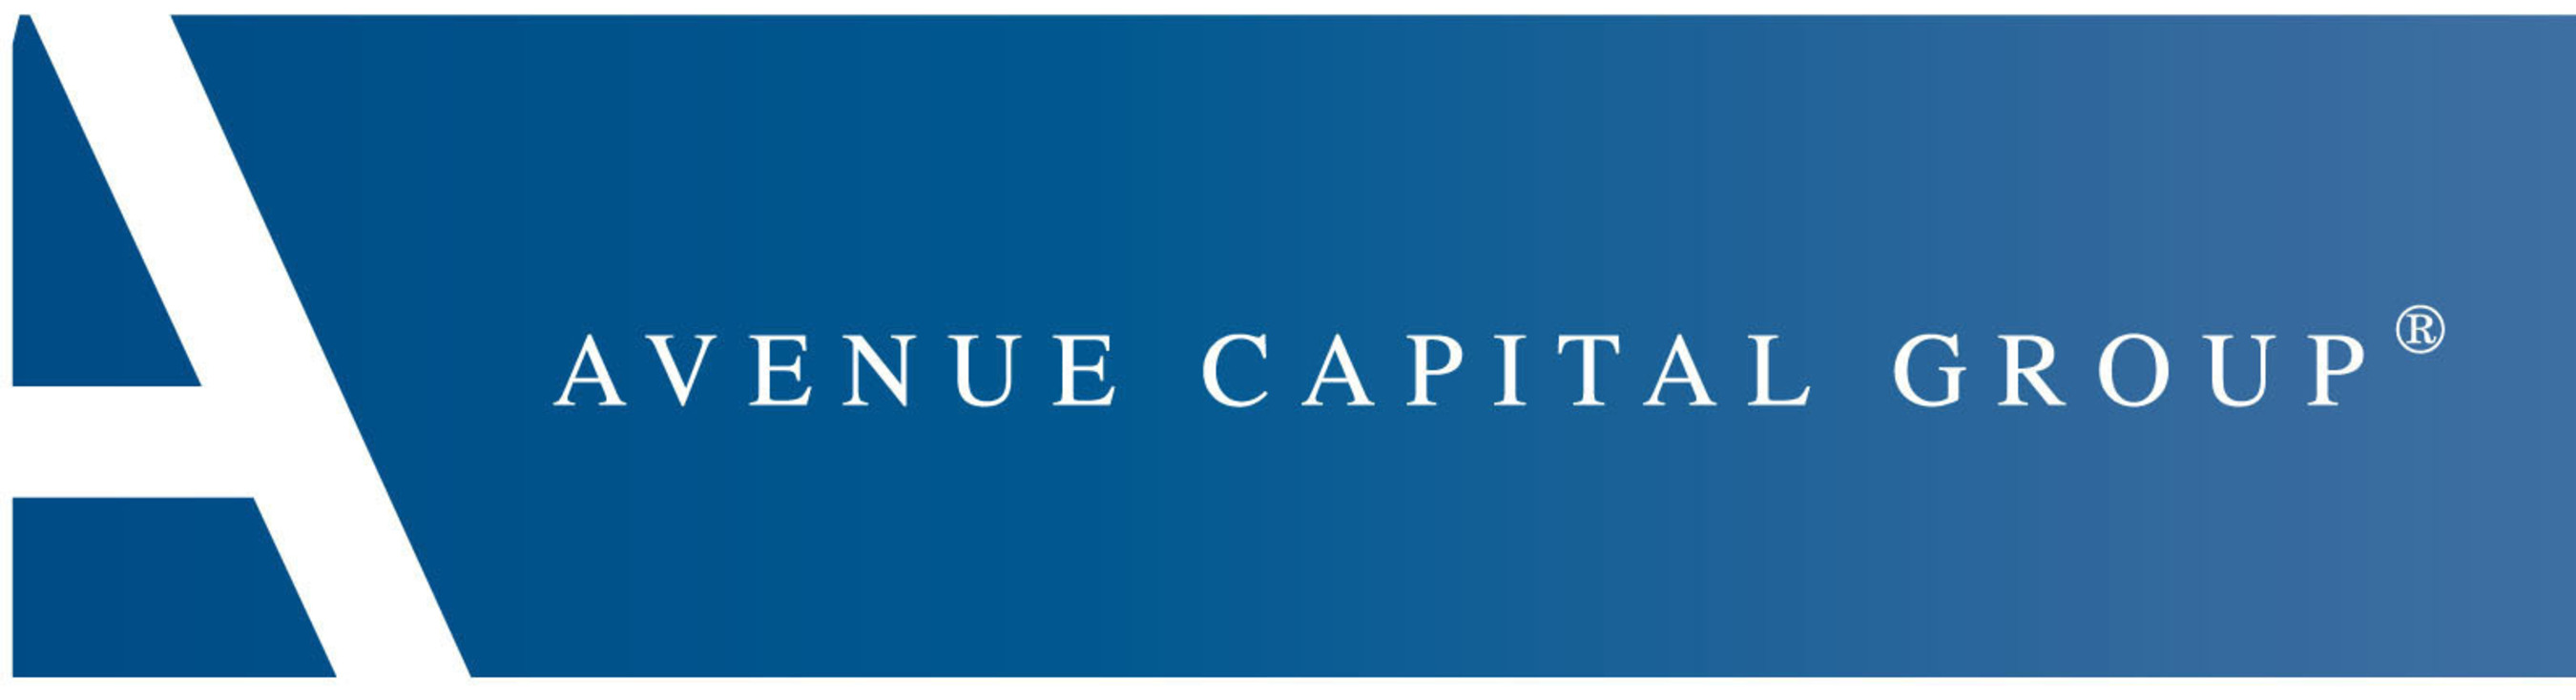 Avenue Capital Group has invested in the public and private debt and equity securities of distressed companies ...